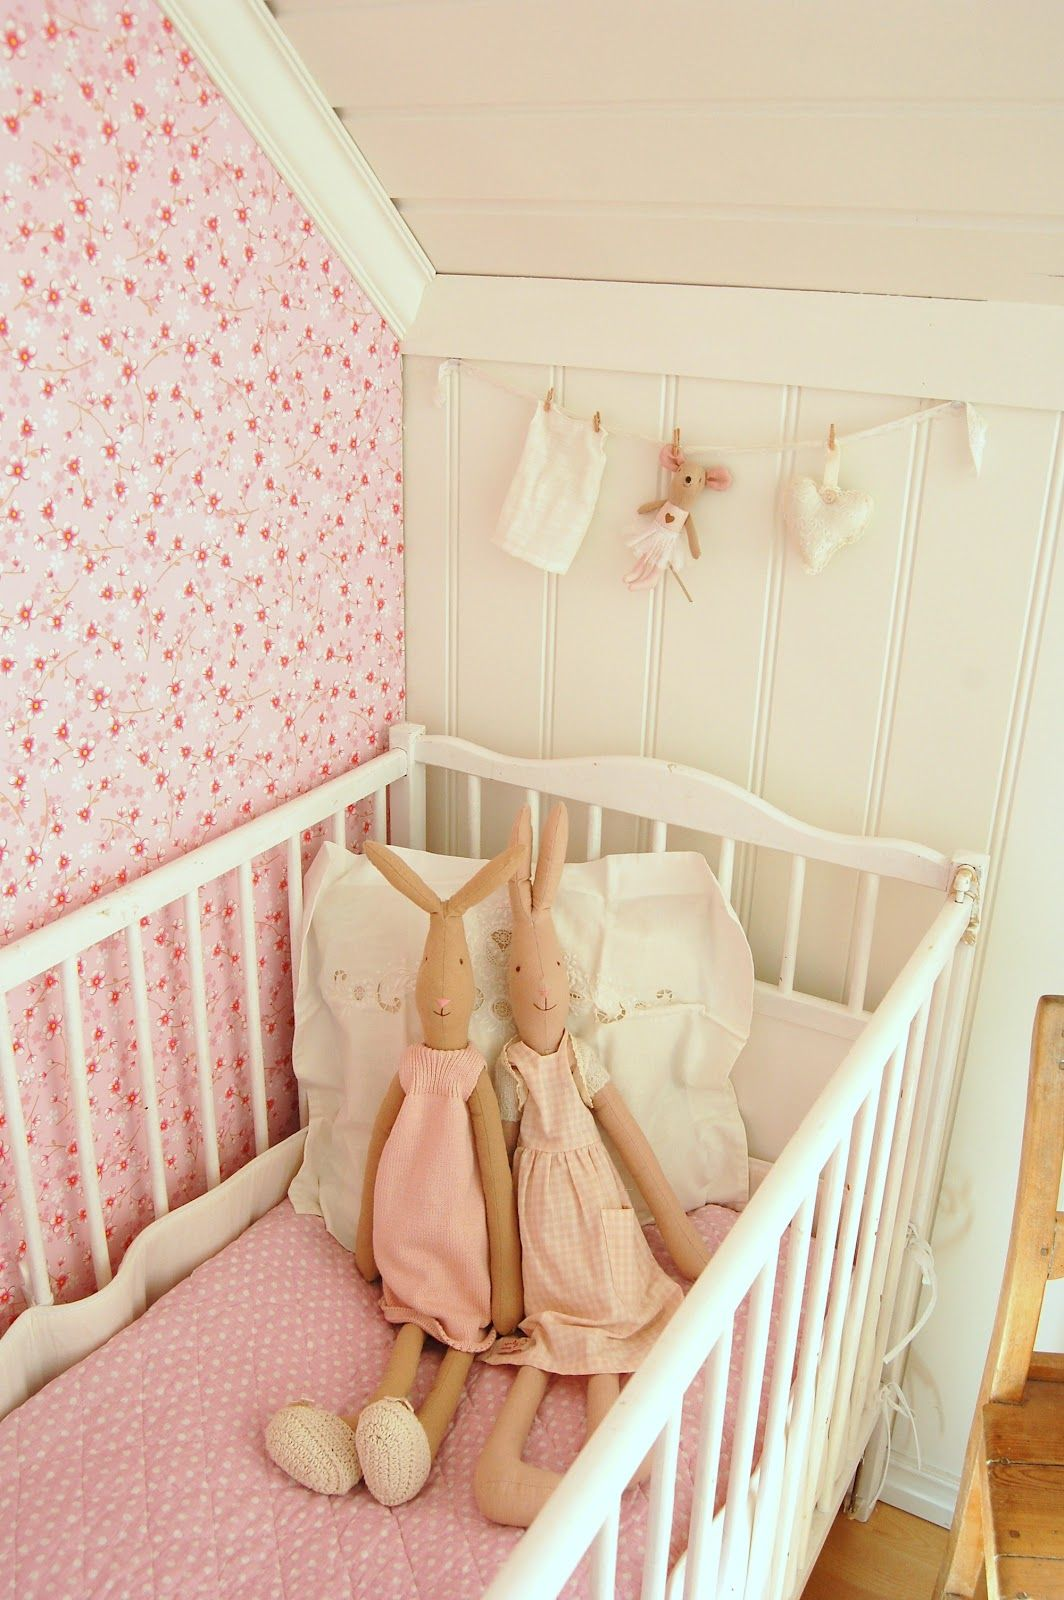 Pin by nina nordfjell on kids pinterest kids rooms shabby and room